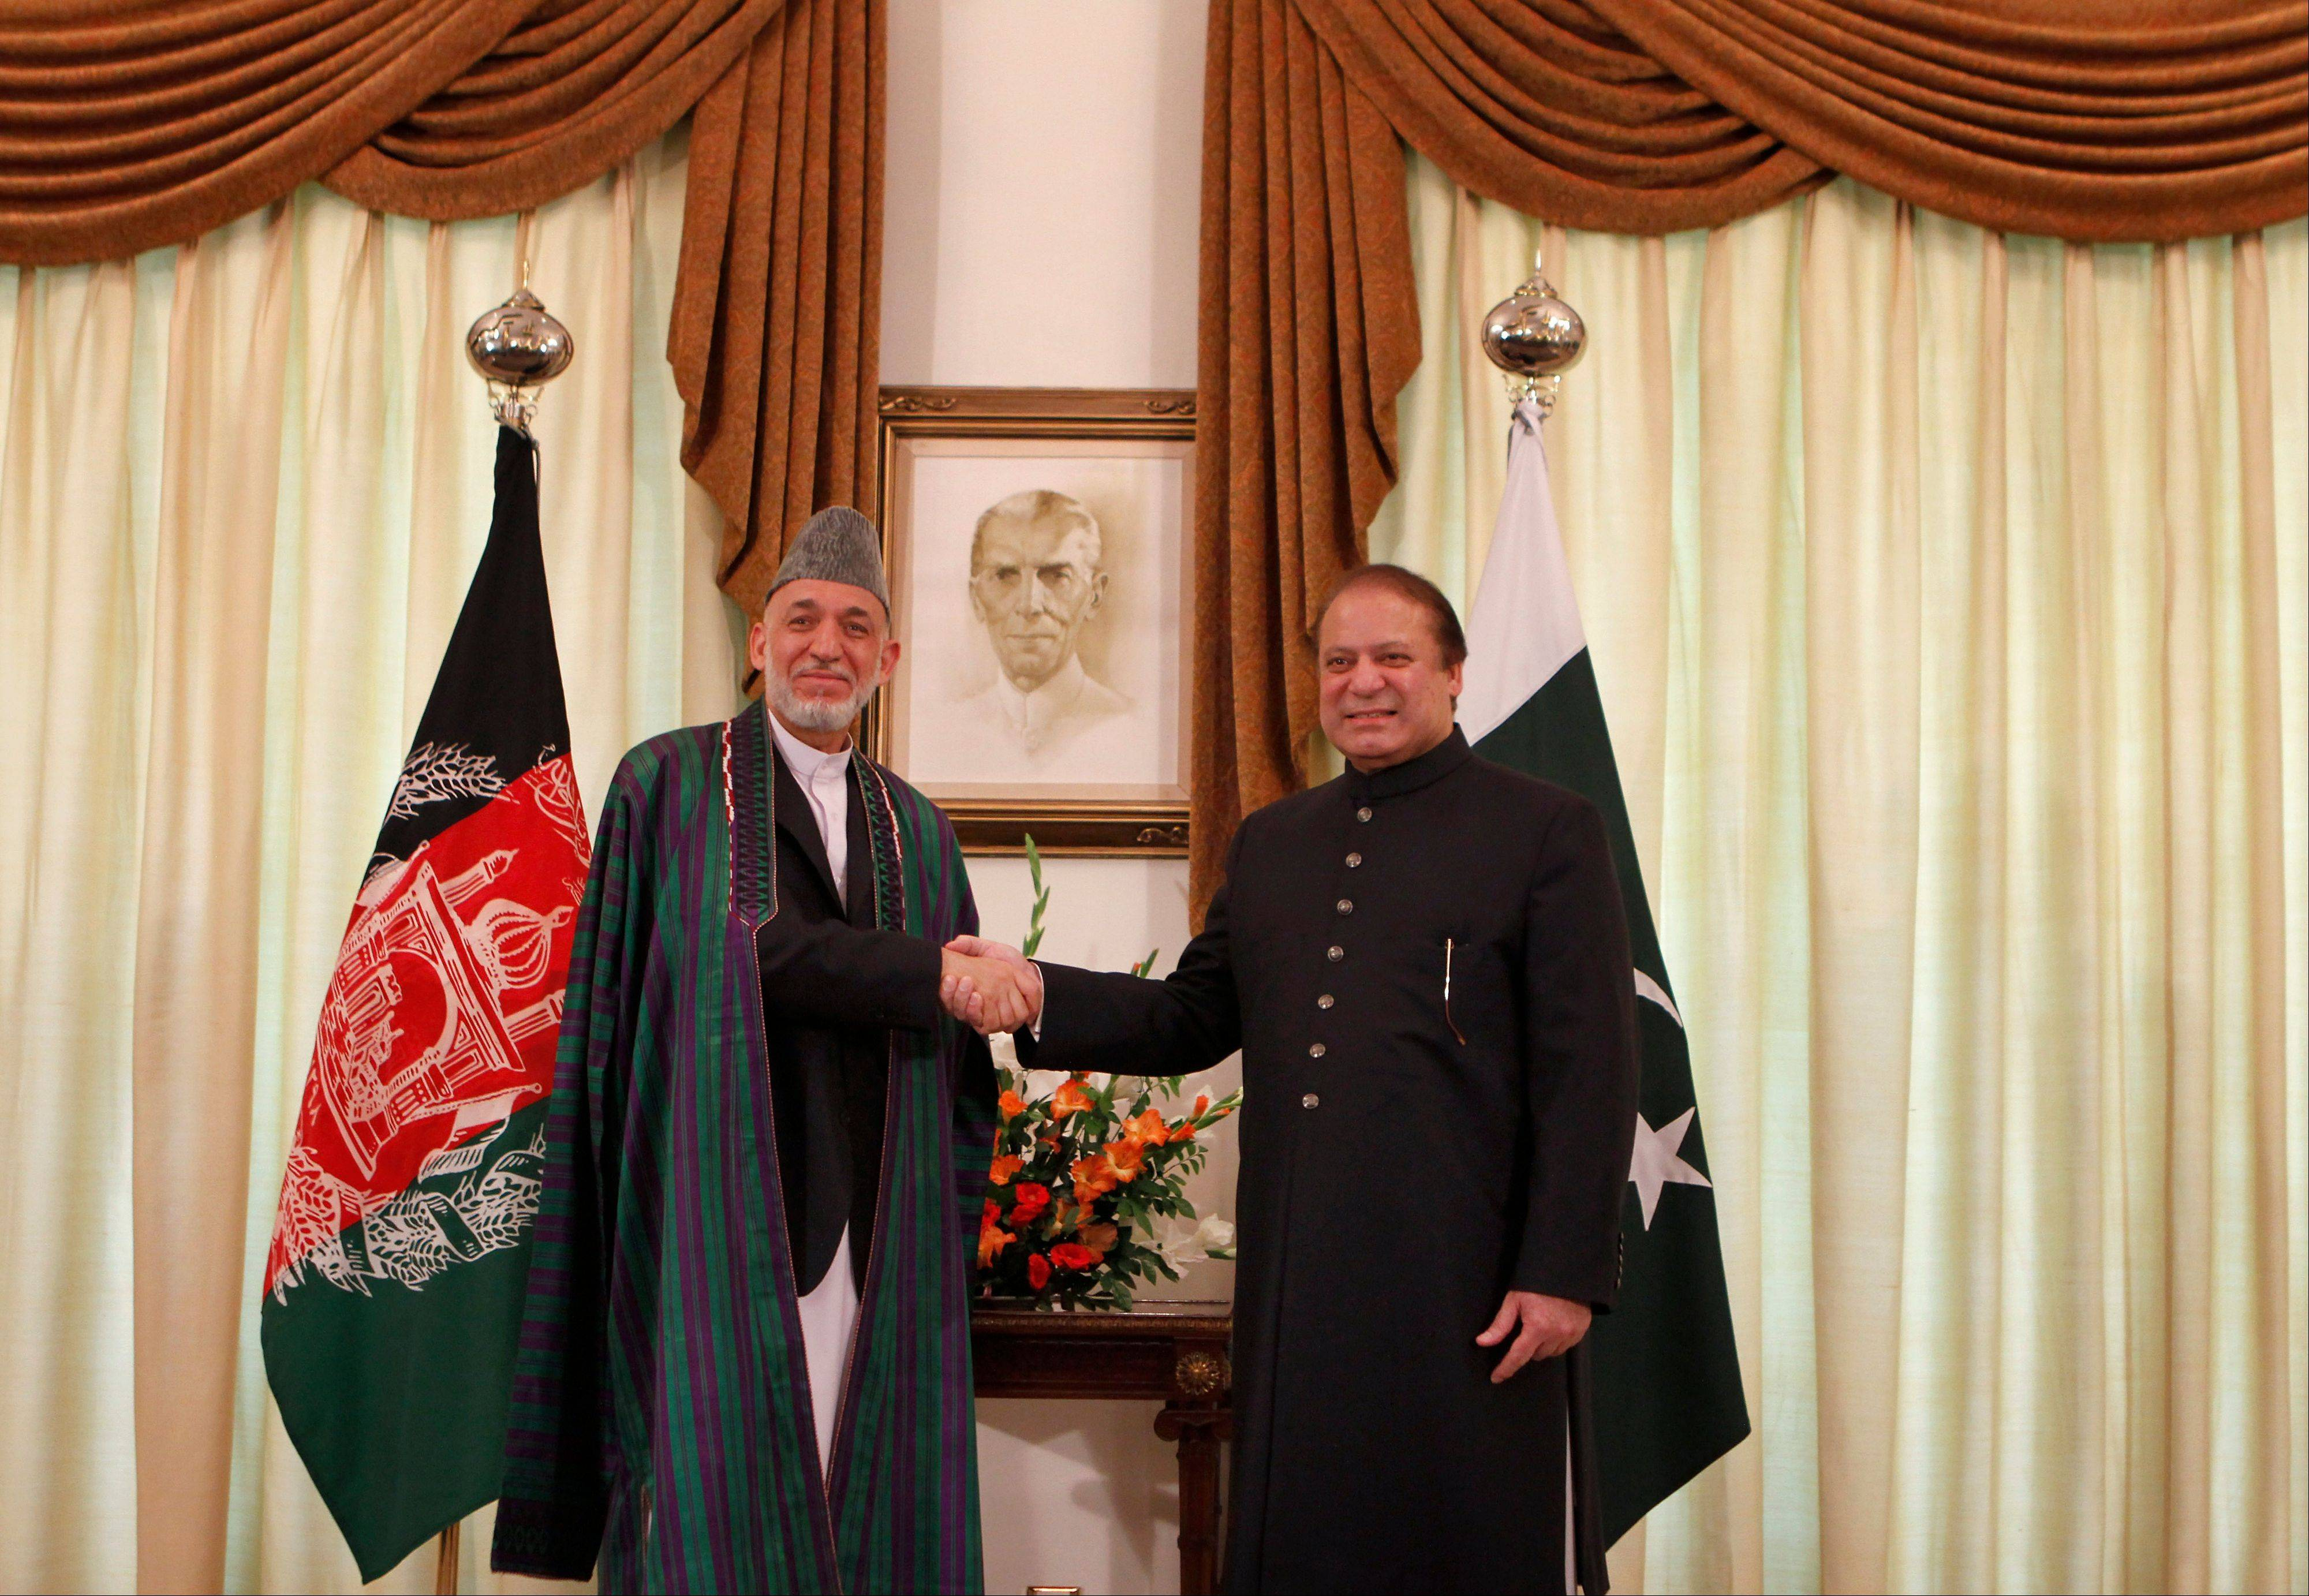 Afghan President Hamid Karzai, left, shakes hand with Pakistani Prime Minister Nawaz Sharif prior to their meeting in Islamabad, Pakistan, Monday. Afghanistan�s president urged neighboring Pakistan to facilitate peace talks with the Taliban during a visit to Islamabad on Monday, but expectations were low in both countries that much progress would be made in jump-starting negotiations.